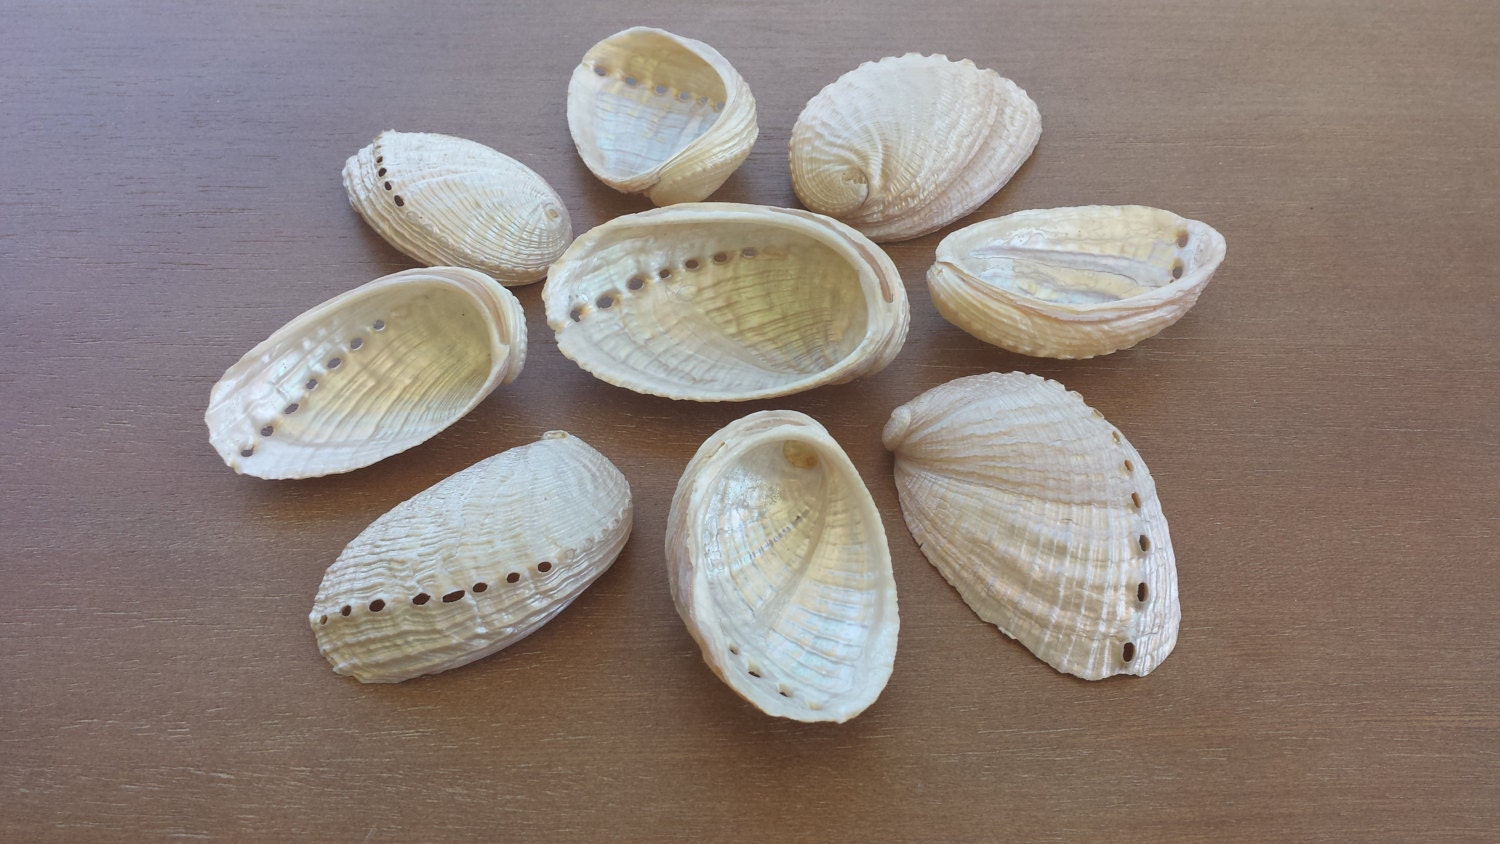 Abalone shells beach decor seashells shells home decor for Shells decorations home